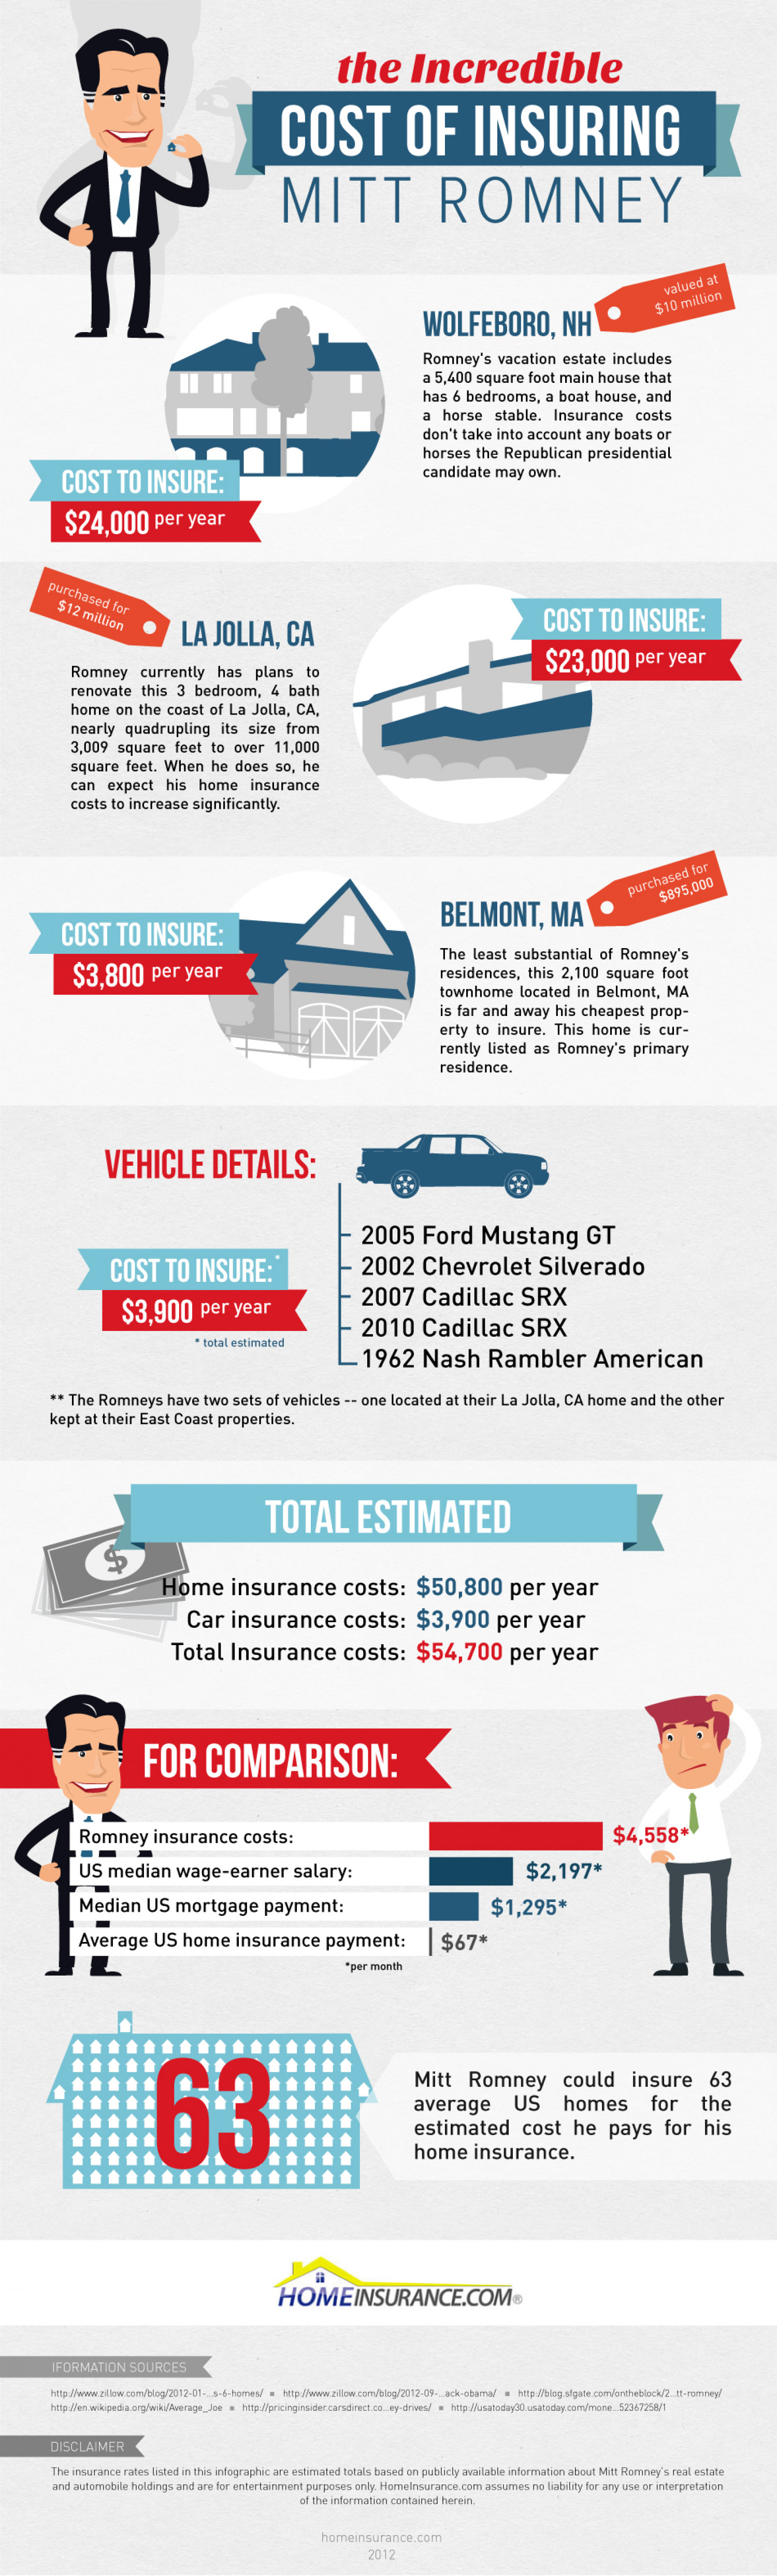 The Incredible Cost of Insuring Mitt Romney Infographic